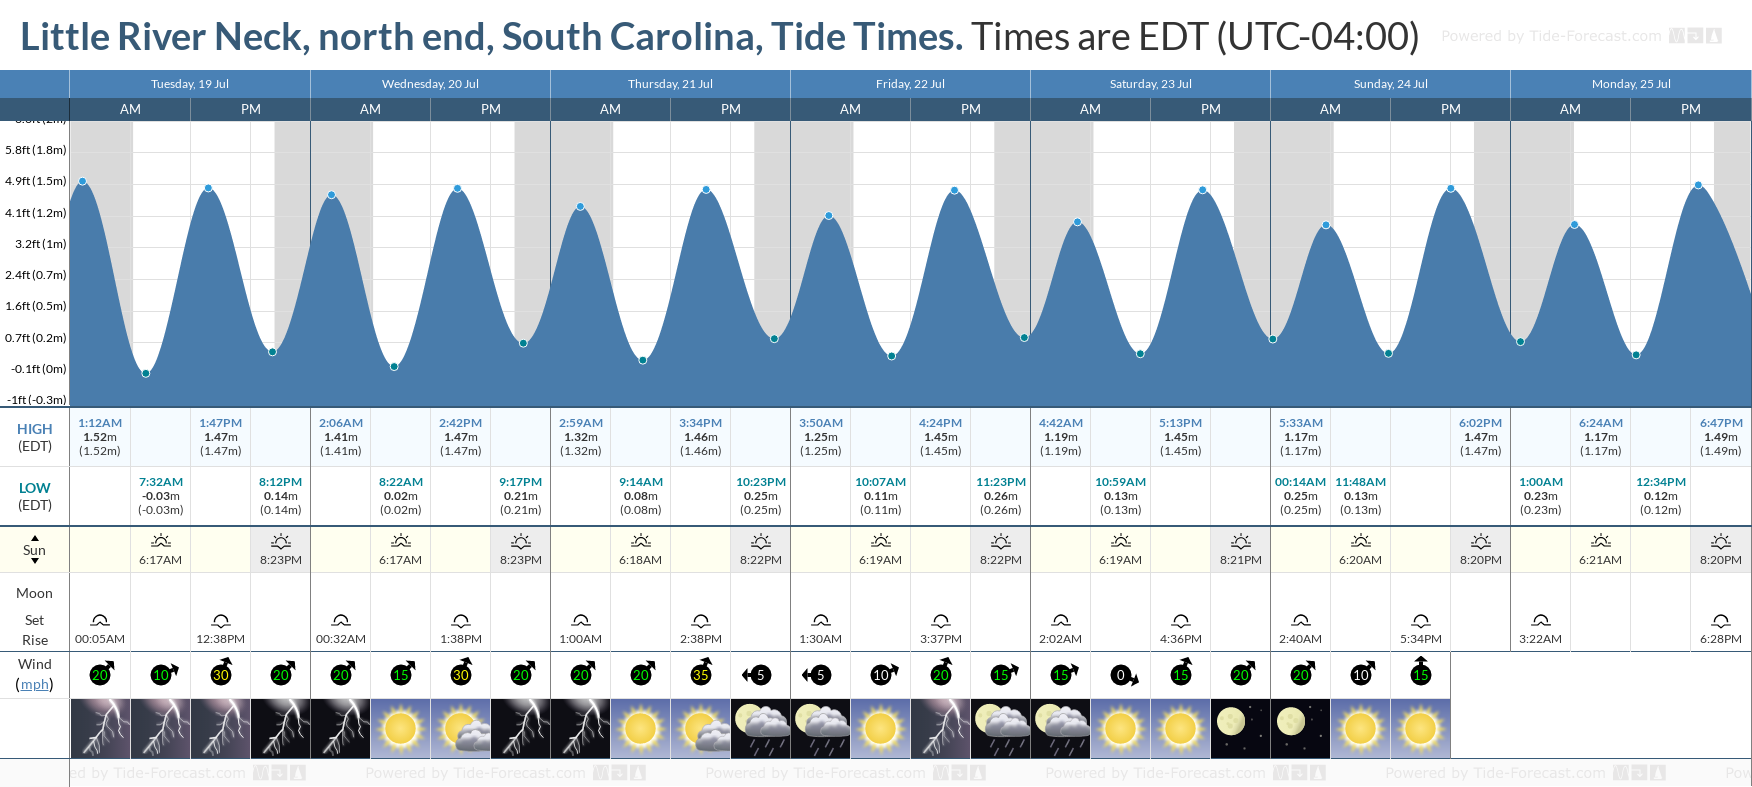 Little River Neck, north end, South Carolina Tide Chart including high and low tide tide times for the next 7 days